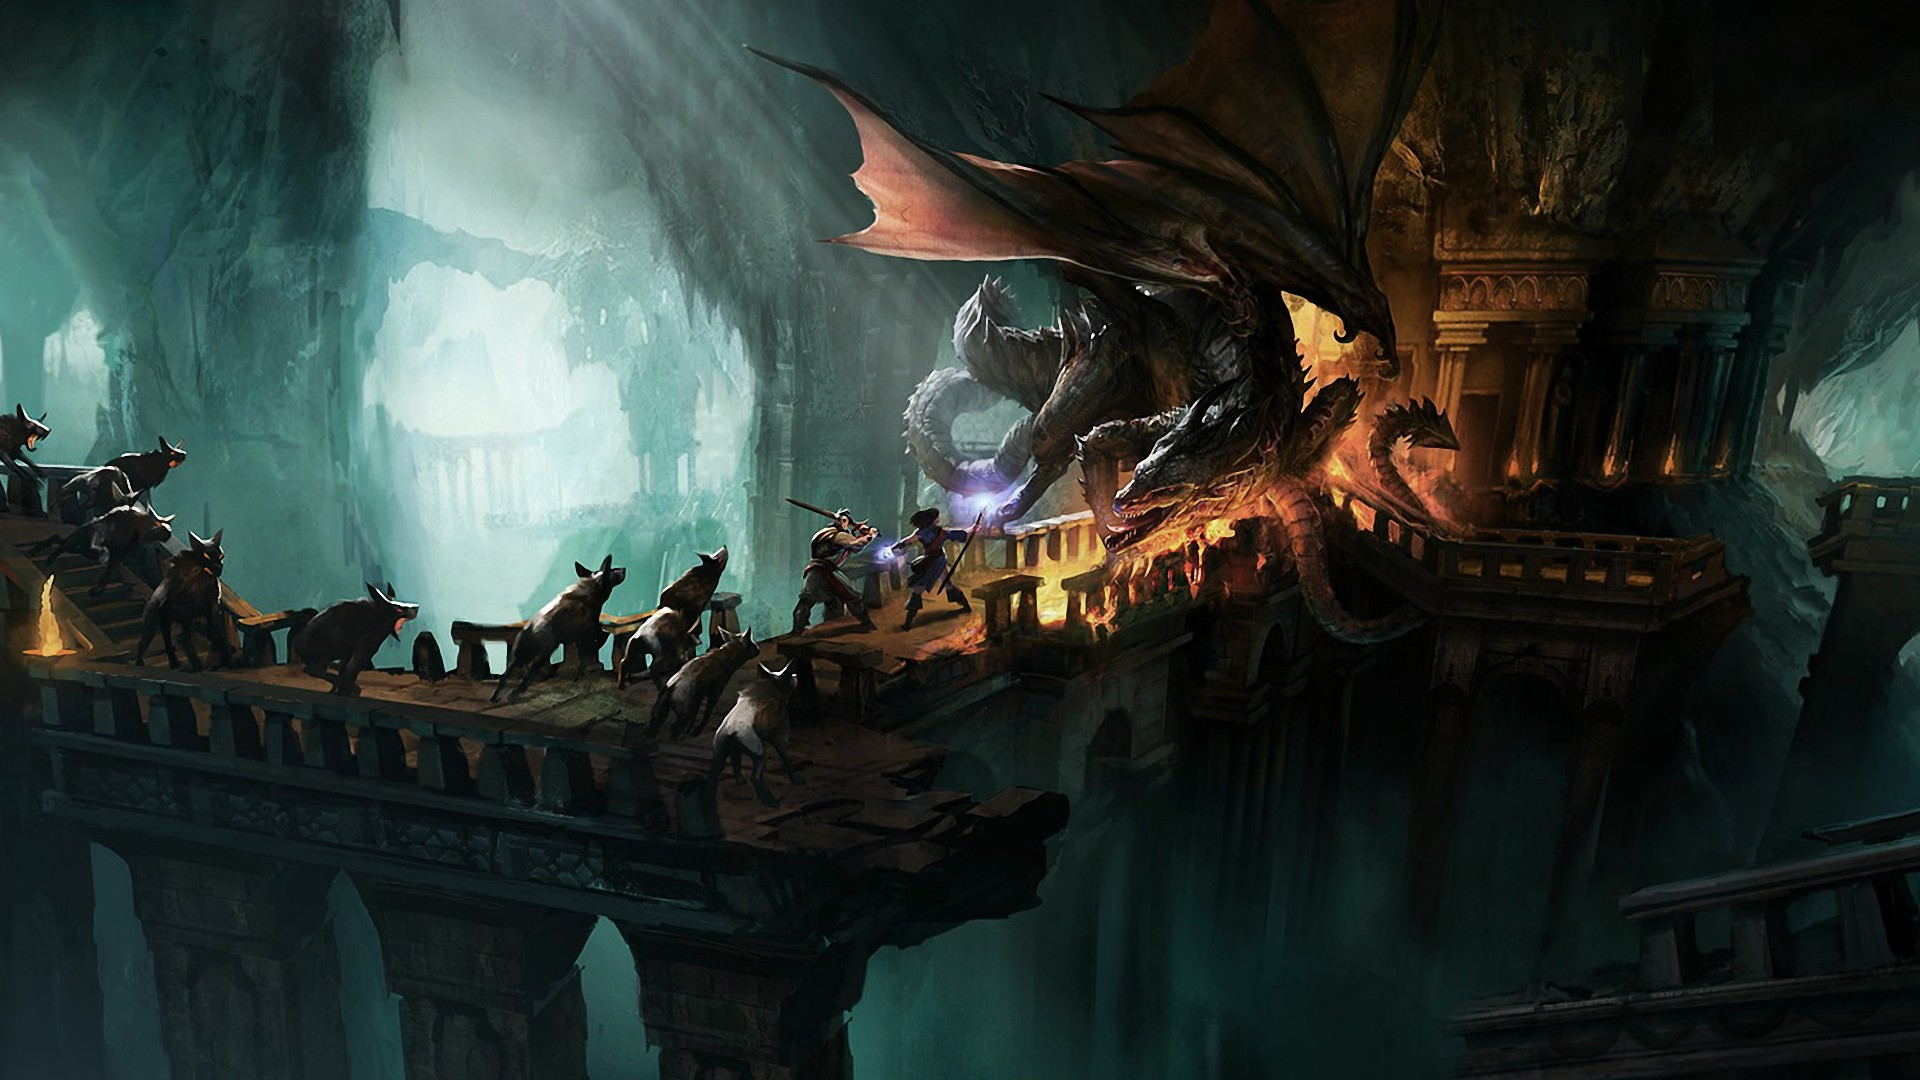 Mage Video Games Wings Caves Ruins Dragons Dogs Bridges